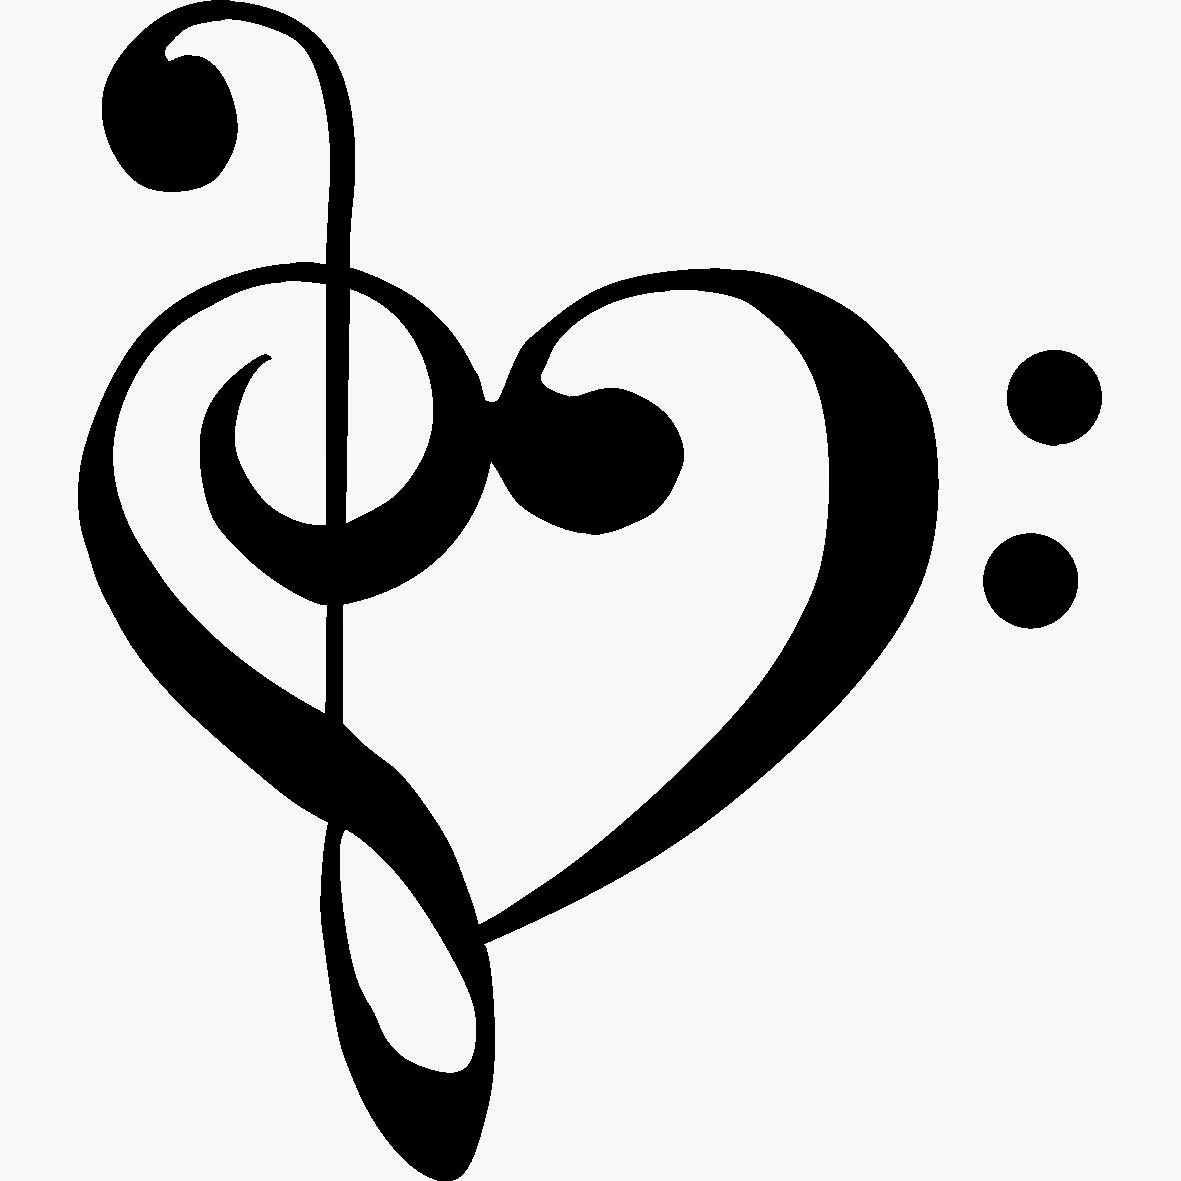 8 Music Note Heart Design Images